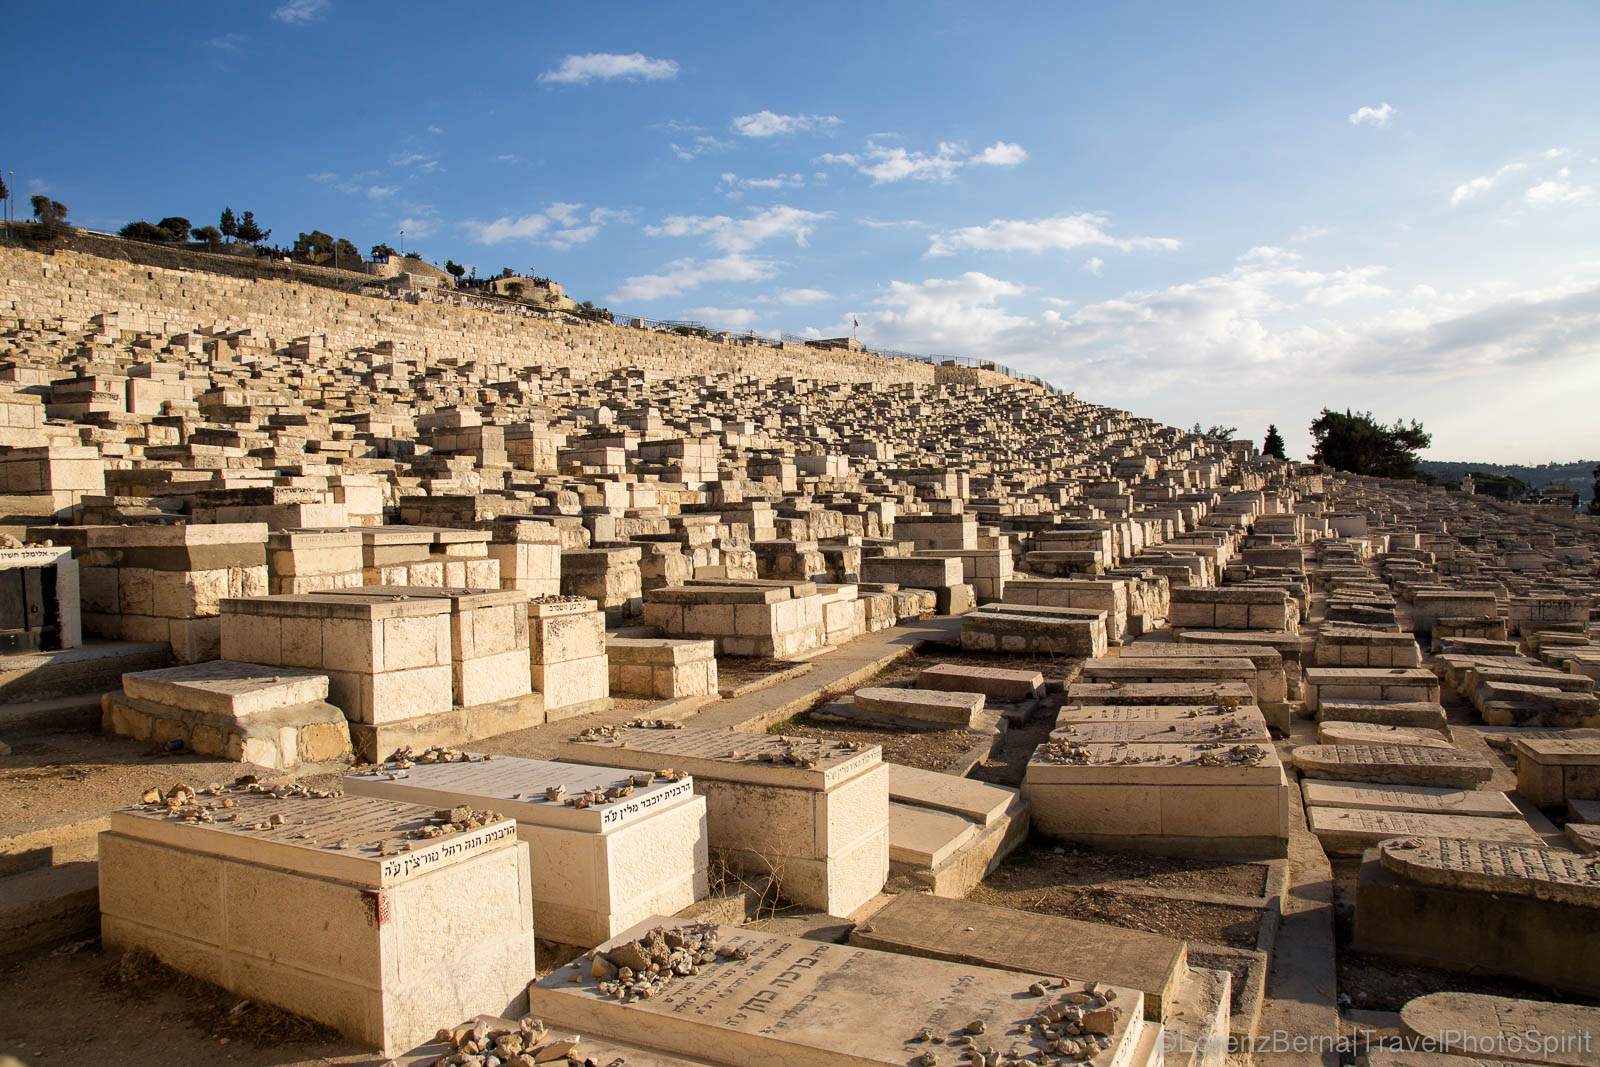 The Jewish cemetery of Jerusalem, Israel.